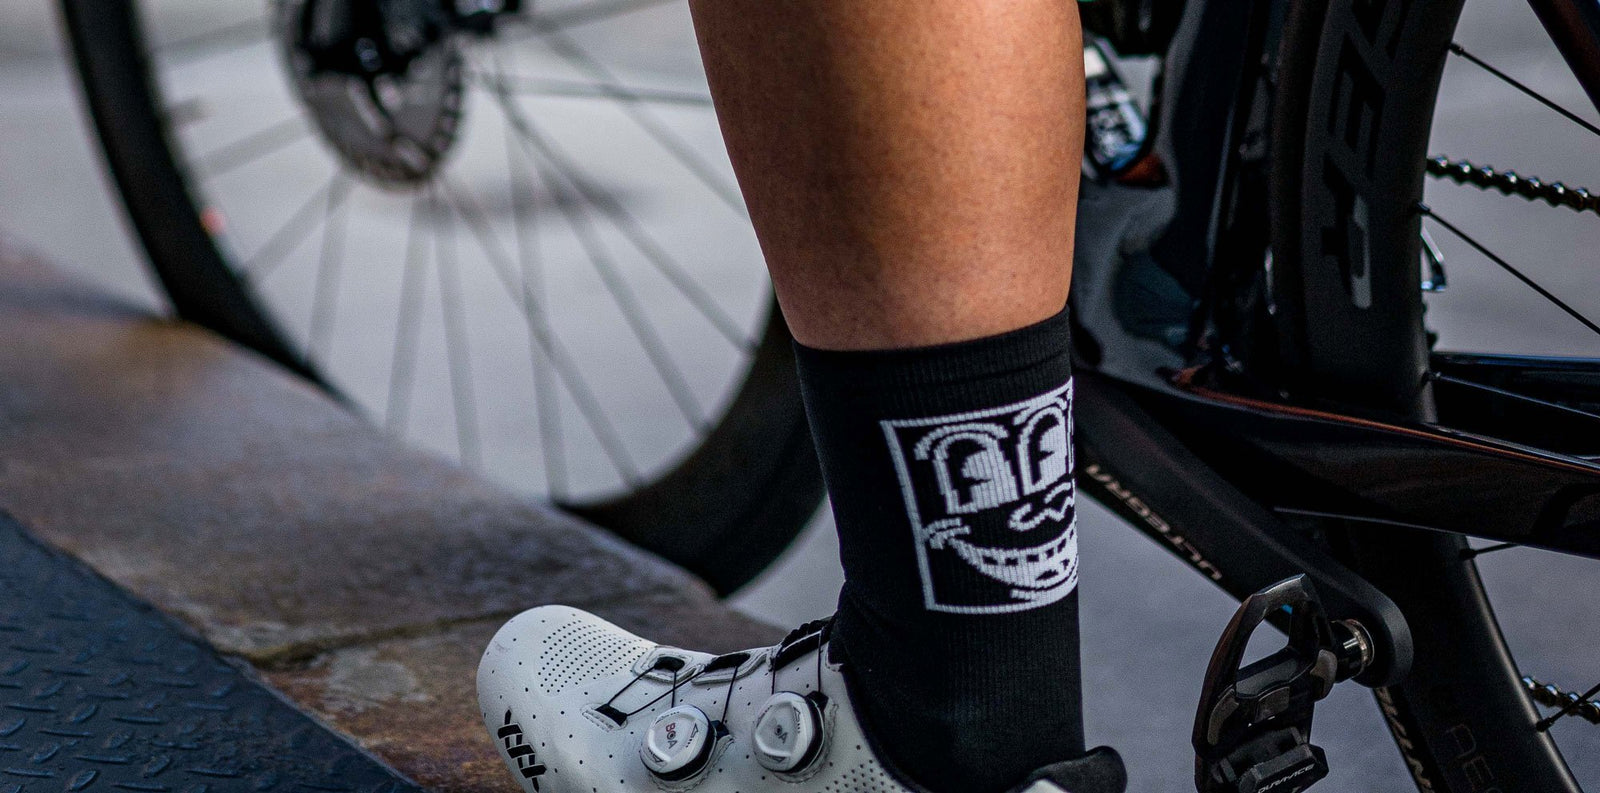 Attaquer x Keith Haring 3rd Eye Socks lifestyle